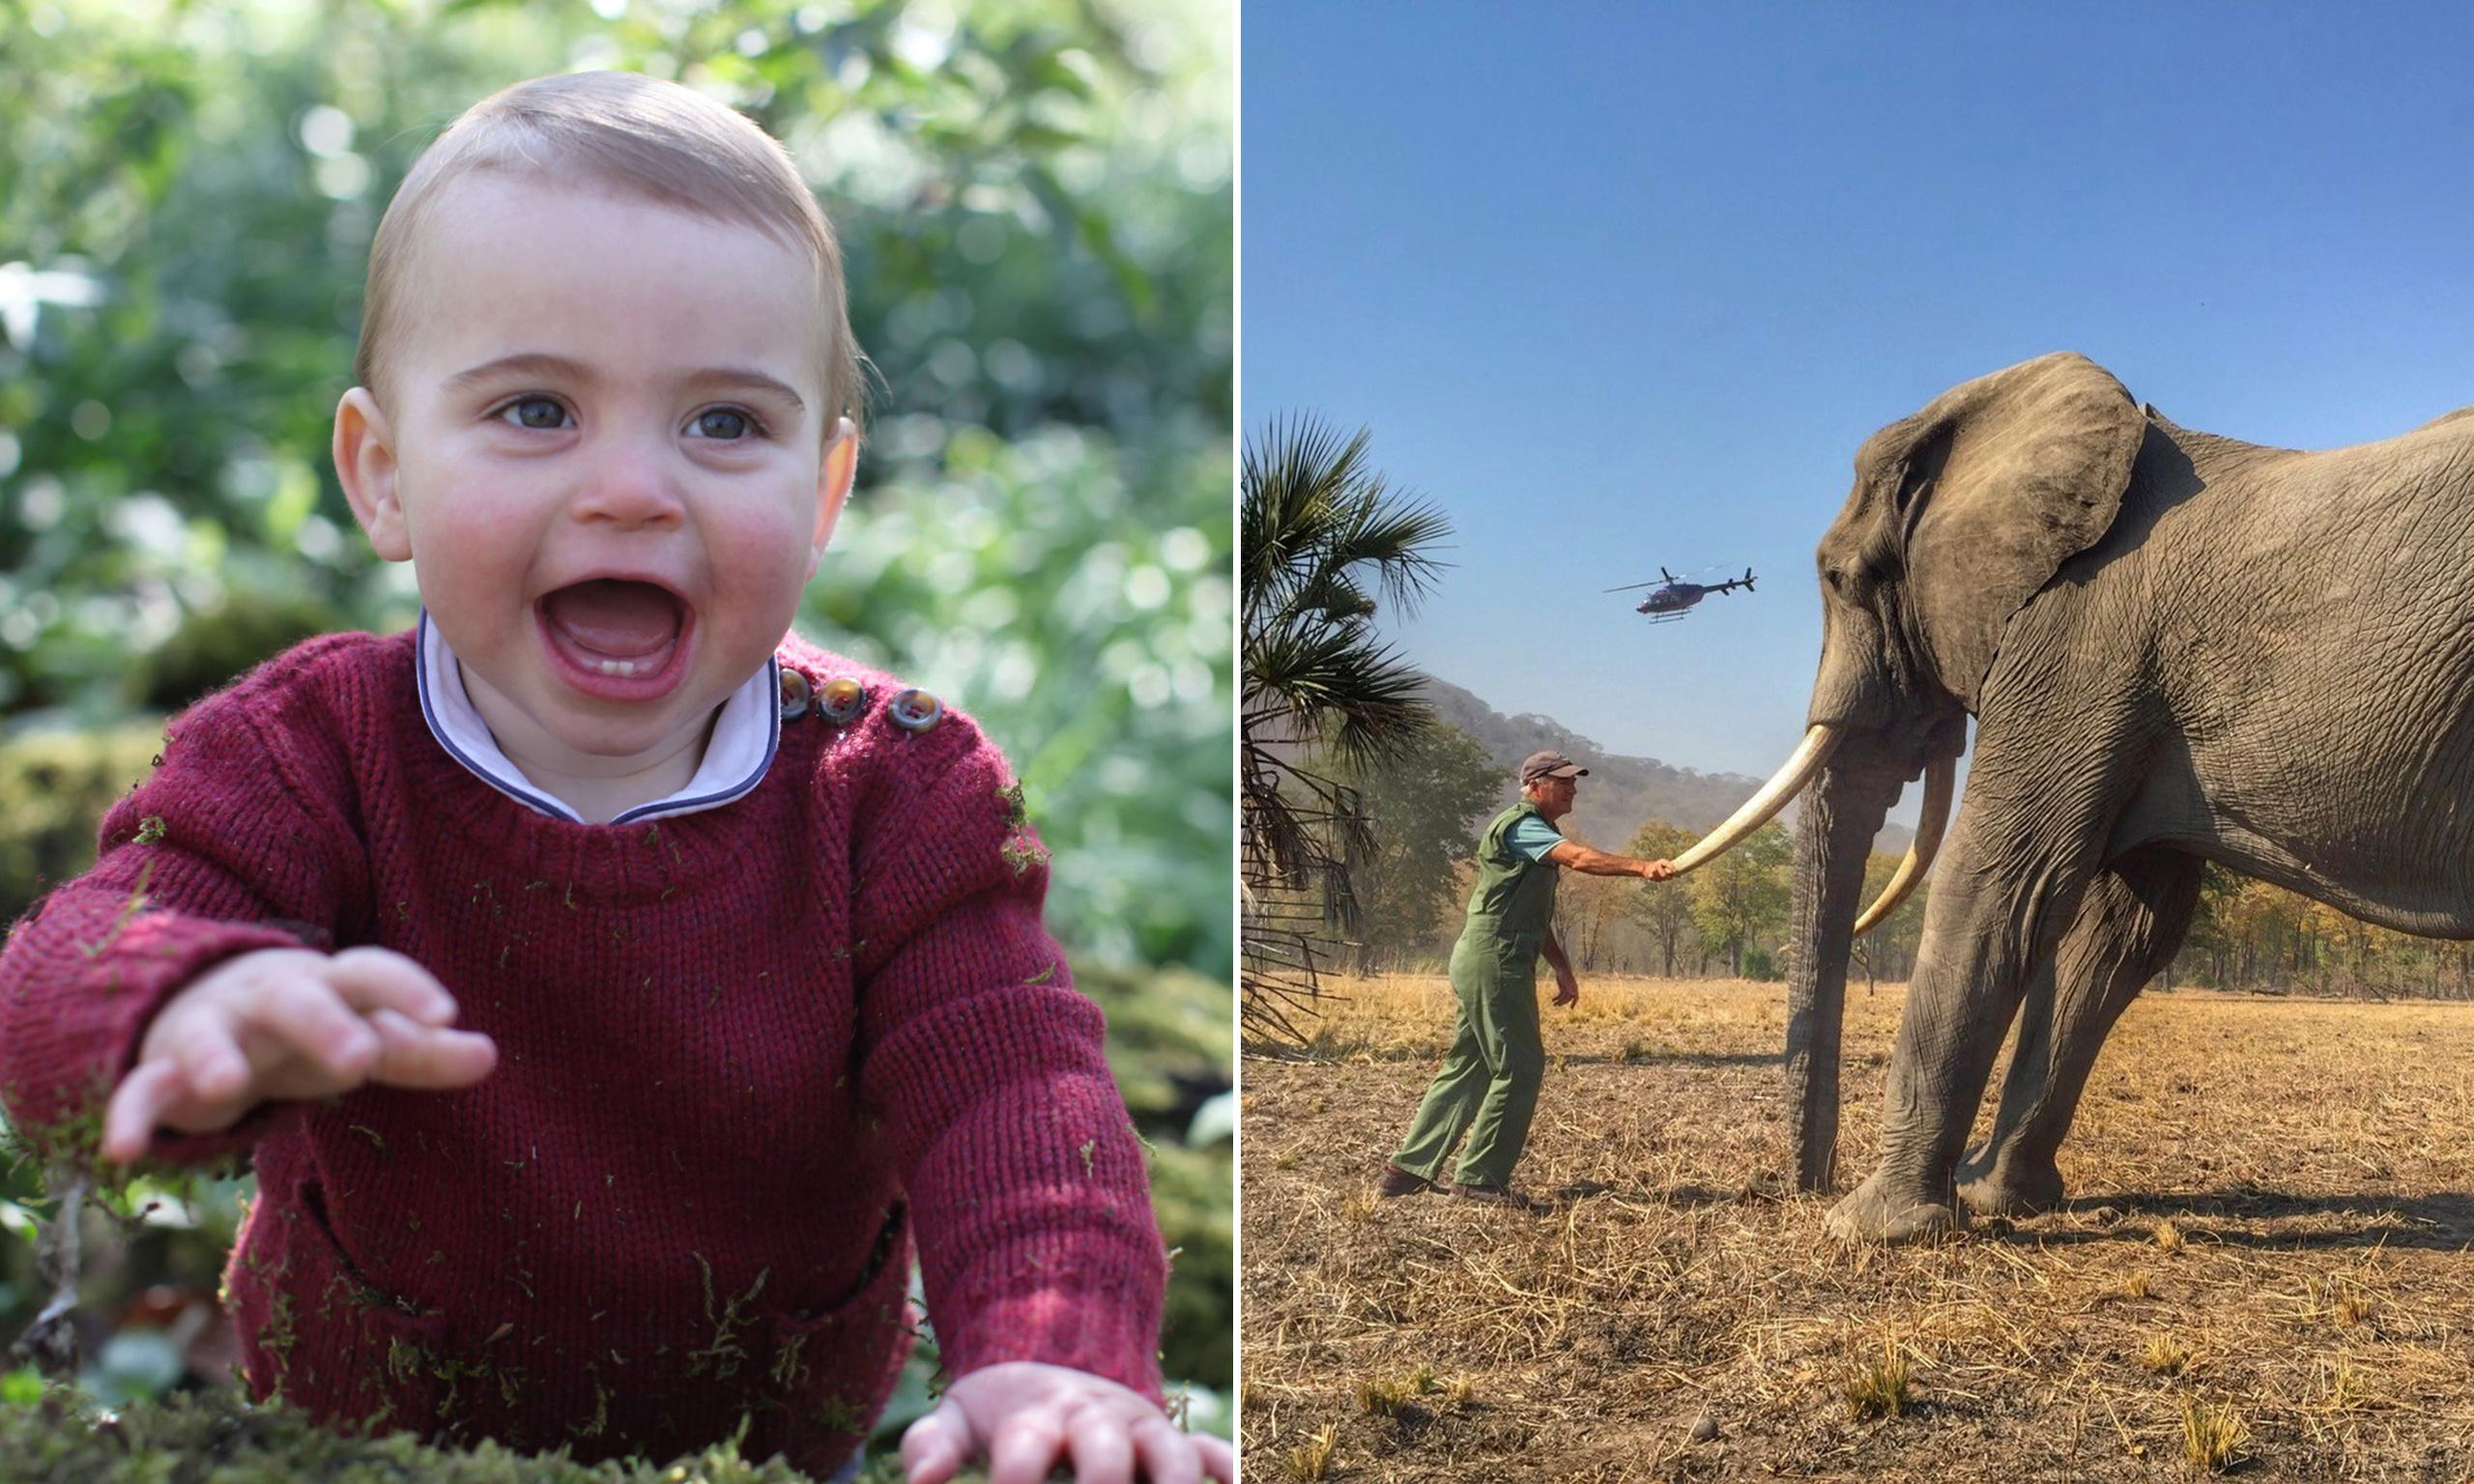 Prince Harry v the Duchess of Cambridge: who is the better photographer?